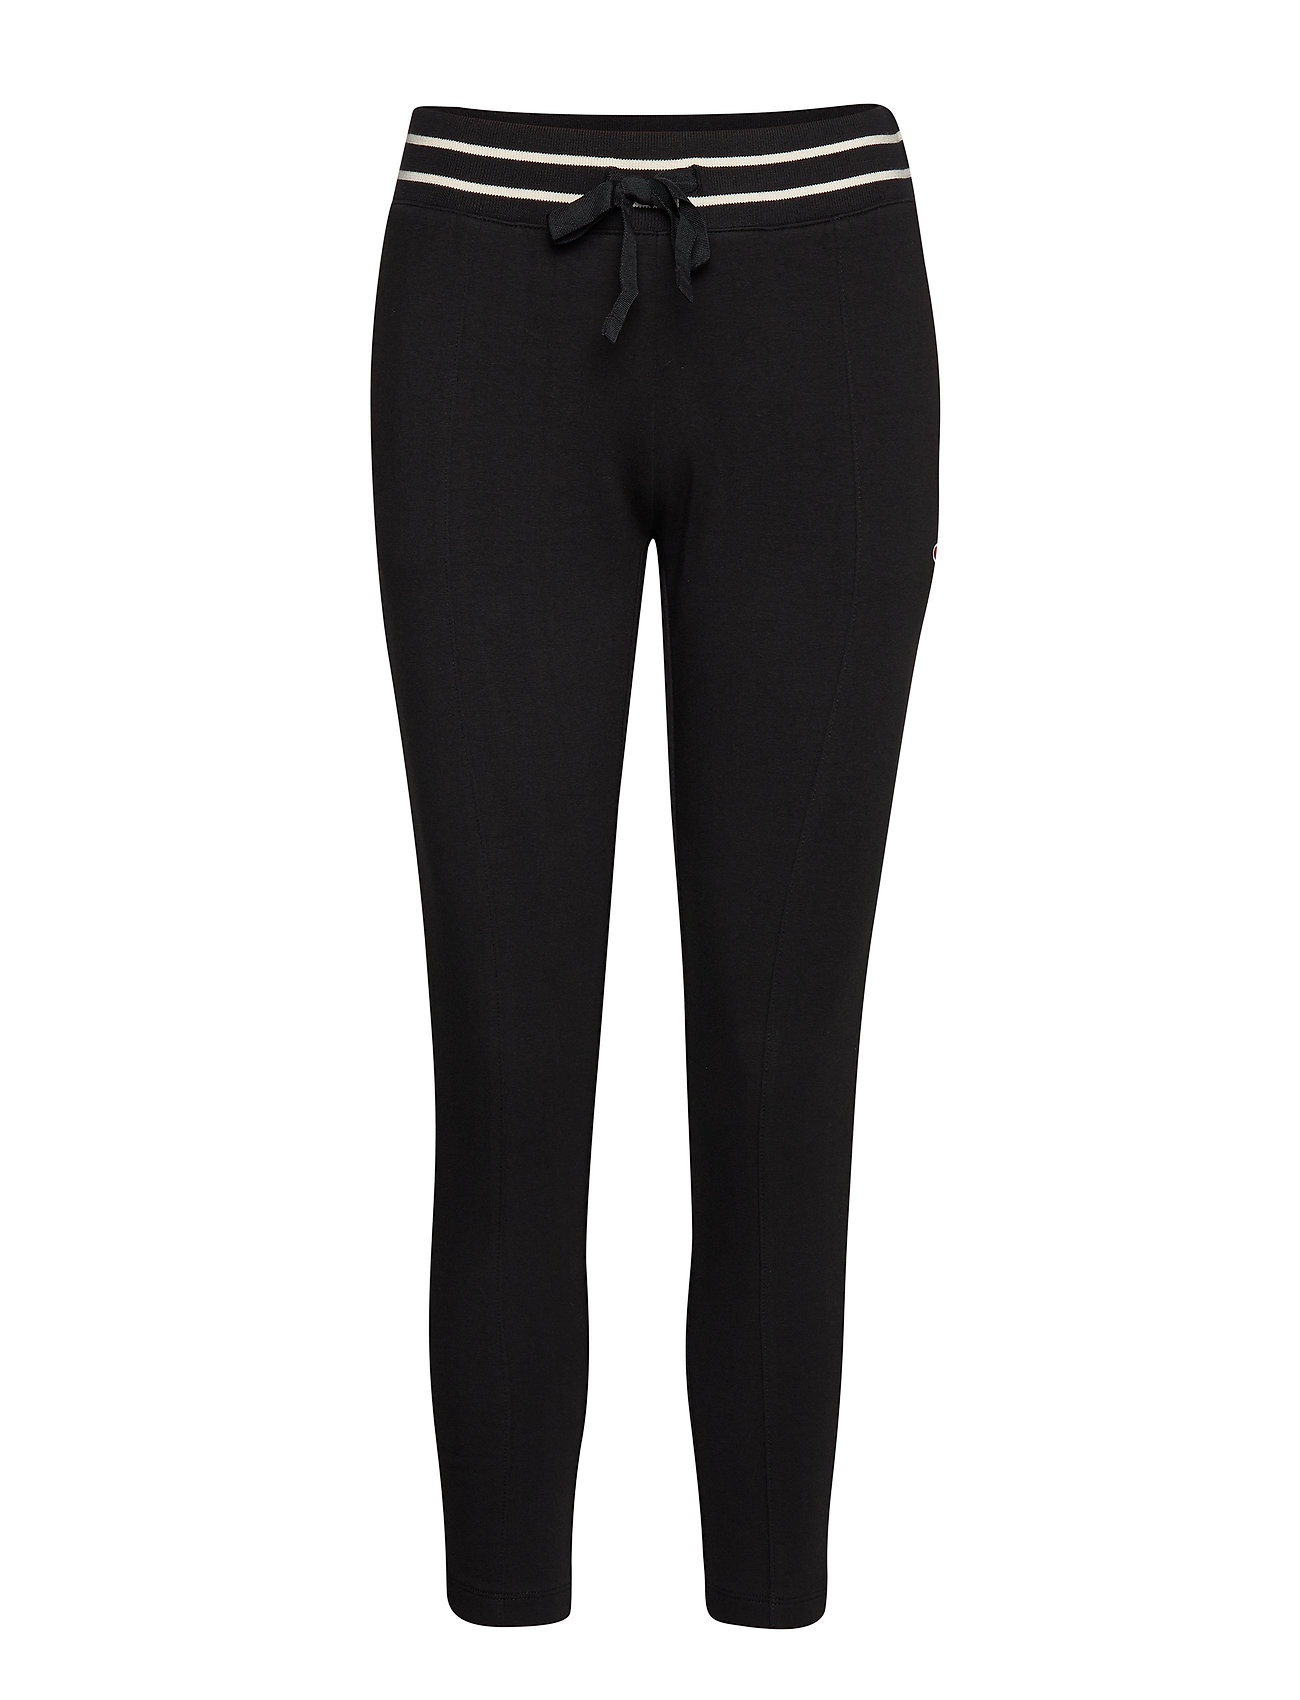 Champion Slim Pants - BLACK BEAUTY